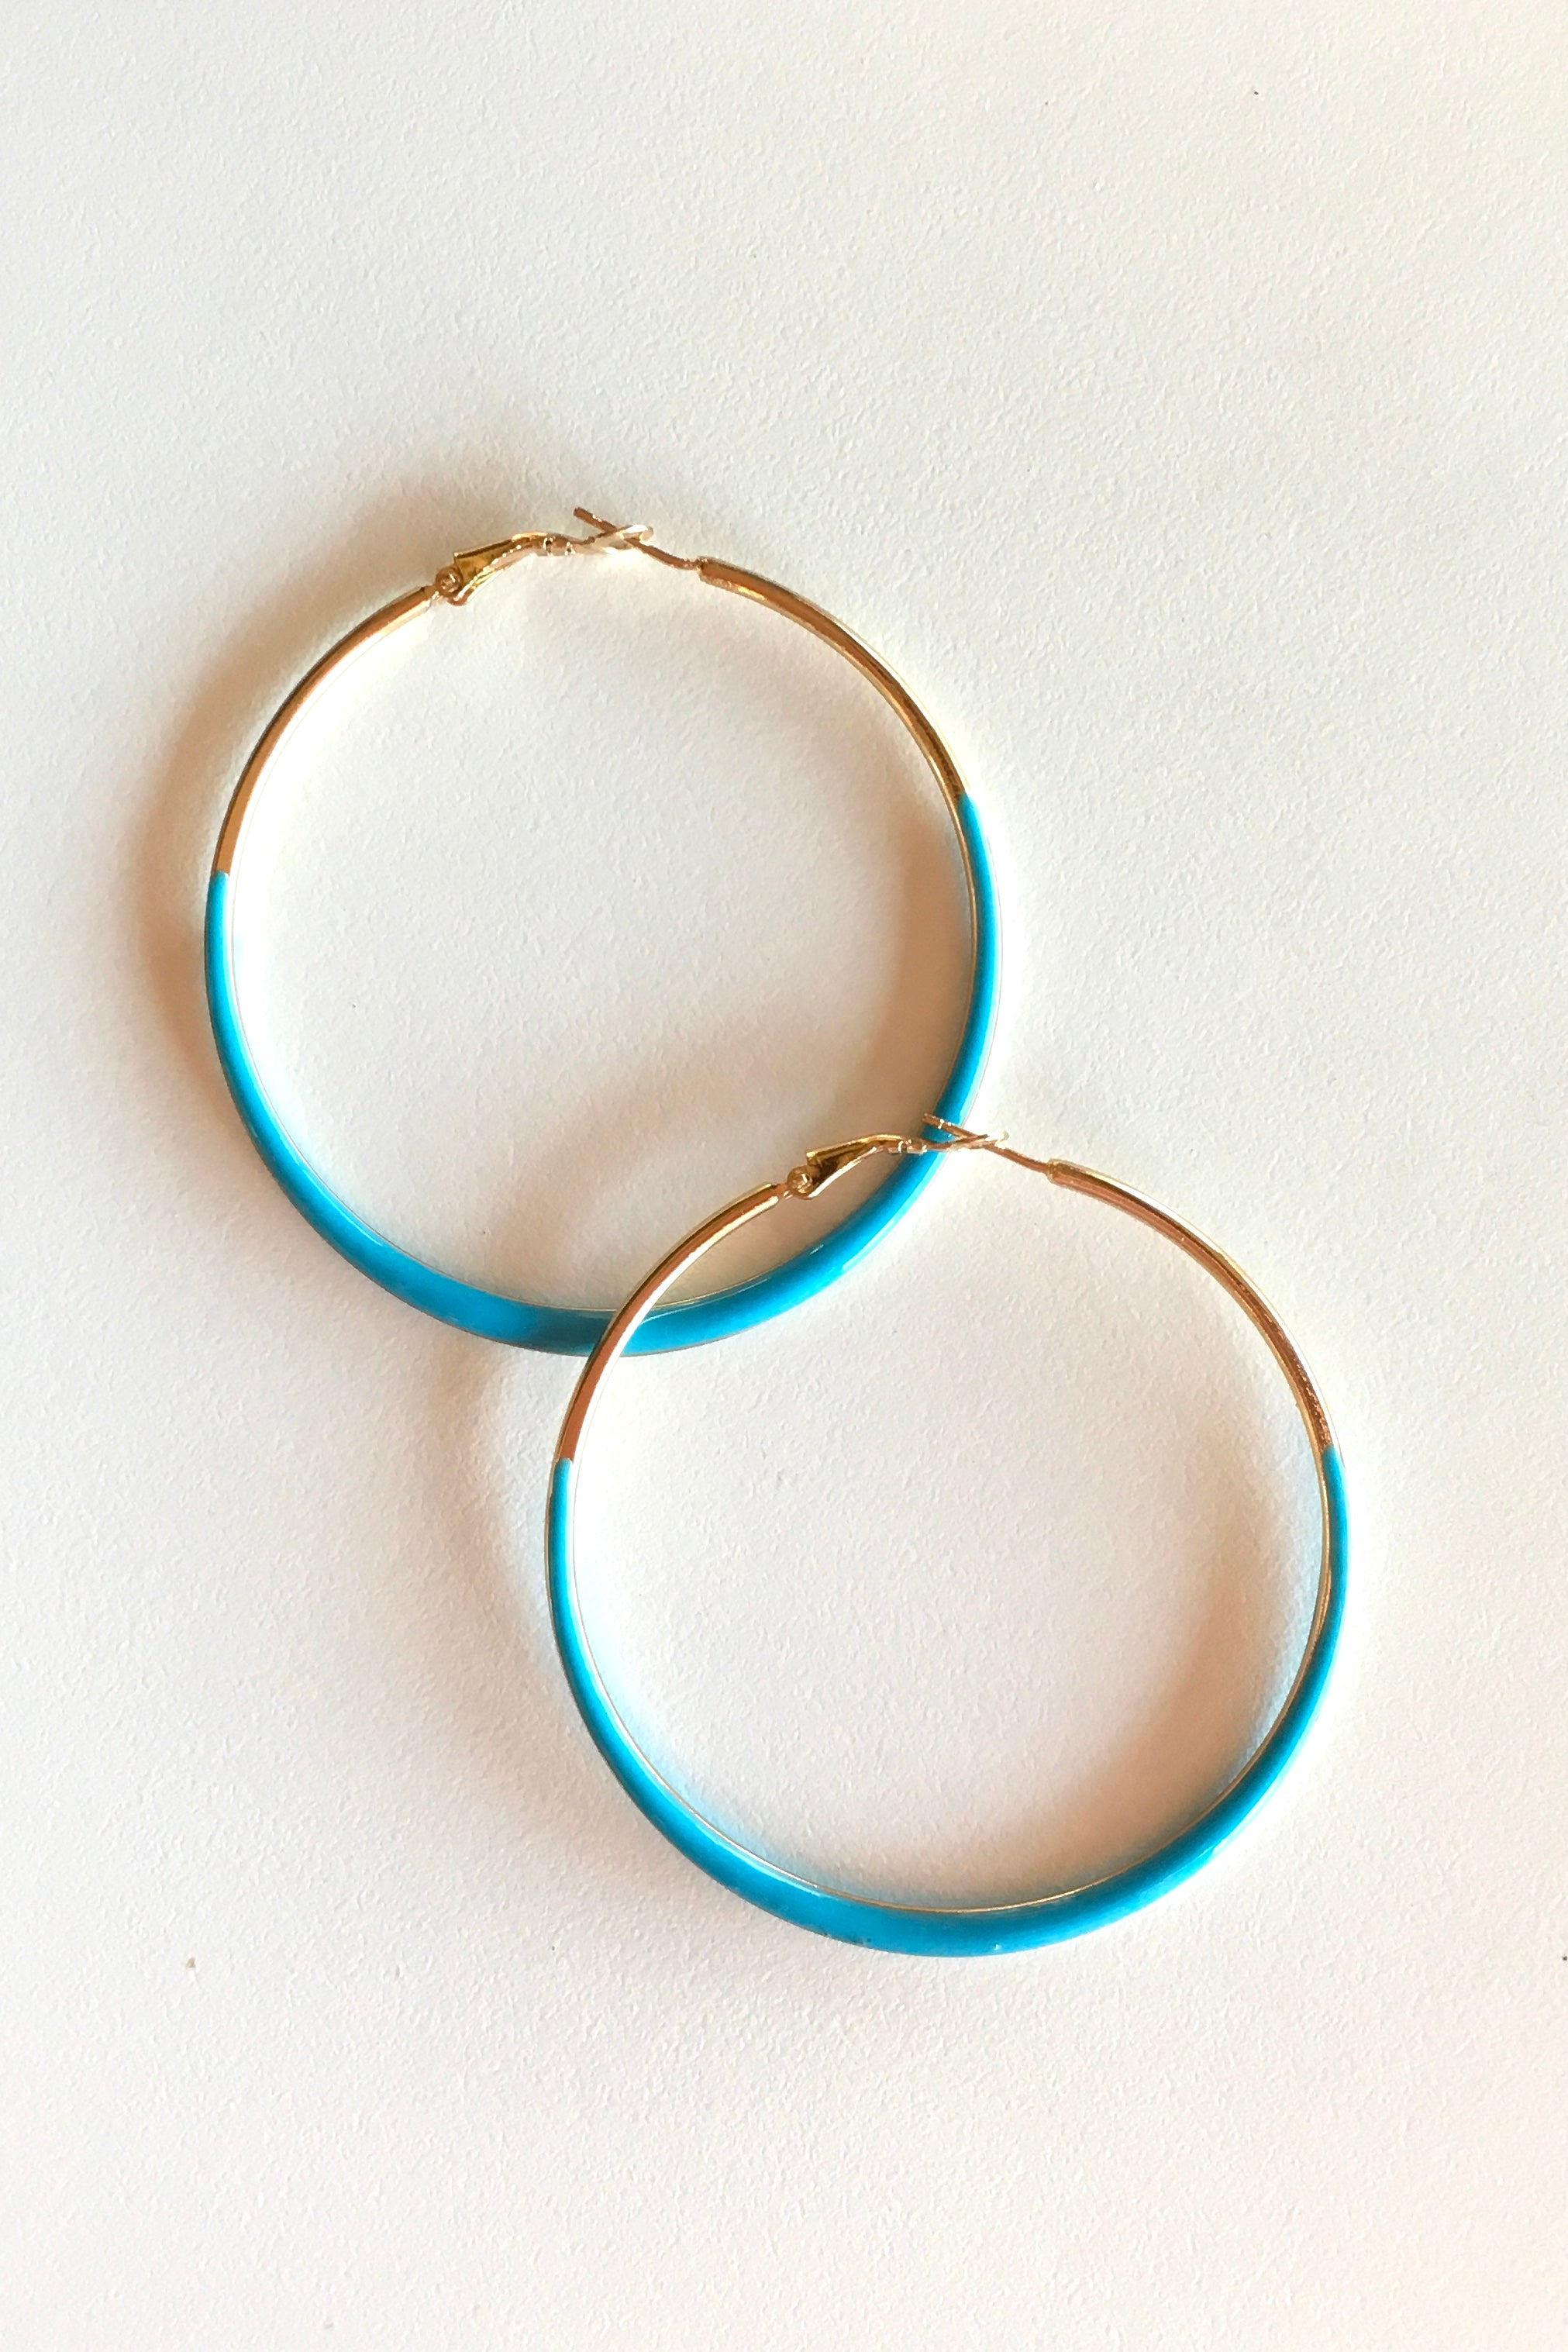 Earring Hoop Turquoise Medium